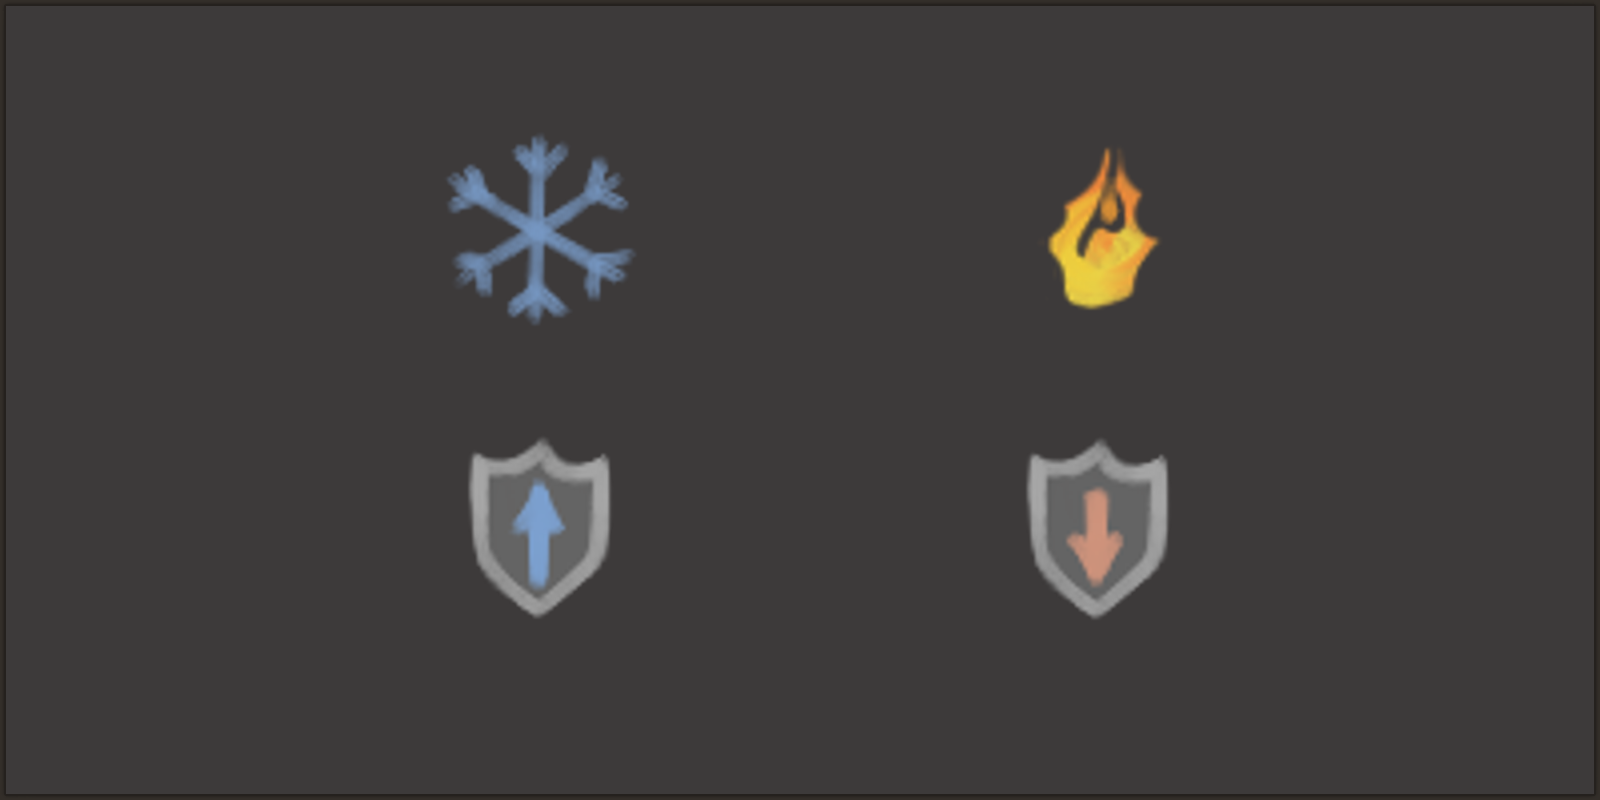 progress 9 - status icons